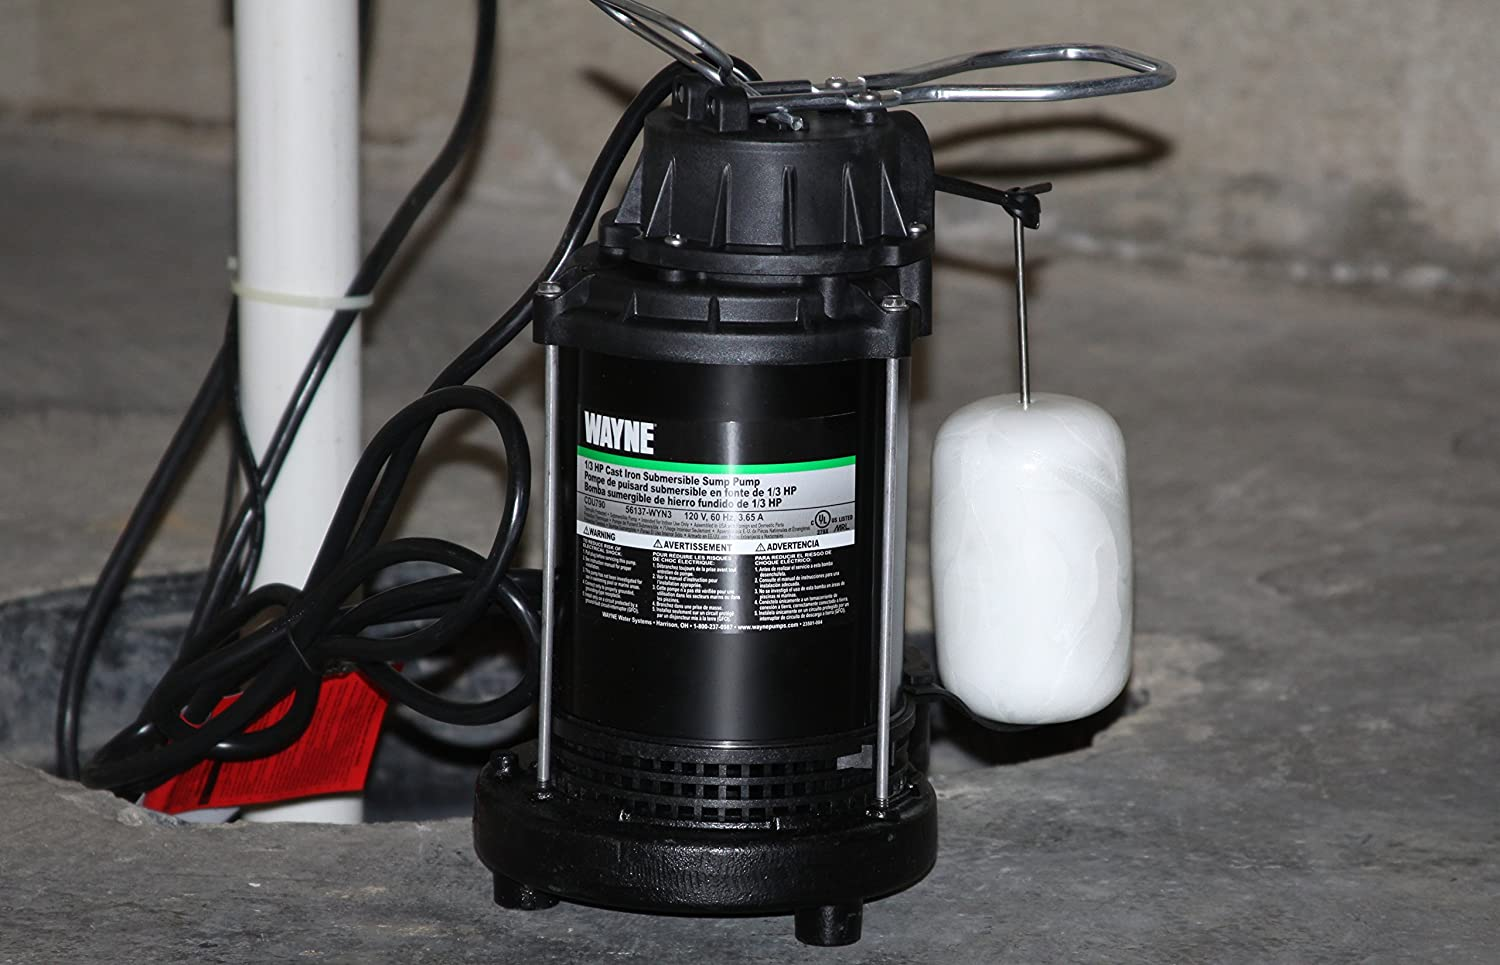 Wayne Cdu790 1 3 Hp Submersible Cast Iron And Steel Sump Pump With Wiring Diagram Integrated Vertical Float Switch